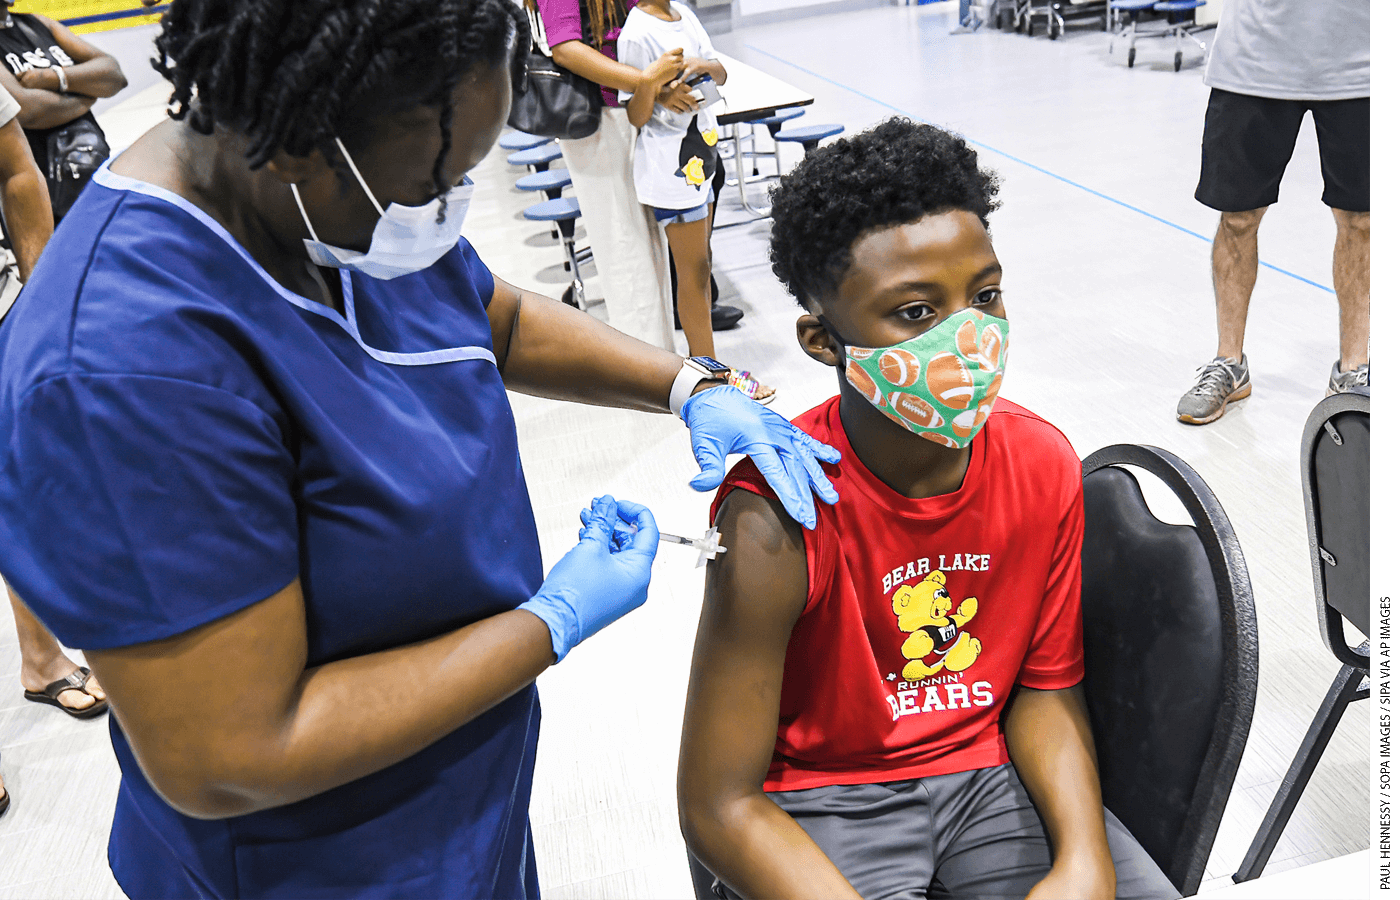 A 12-year-old boy gets vaccinated in Florida.